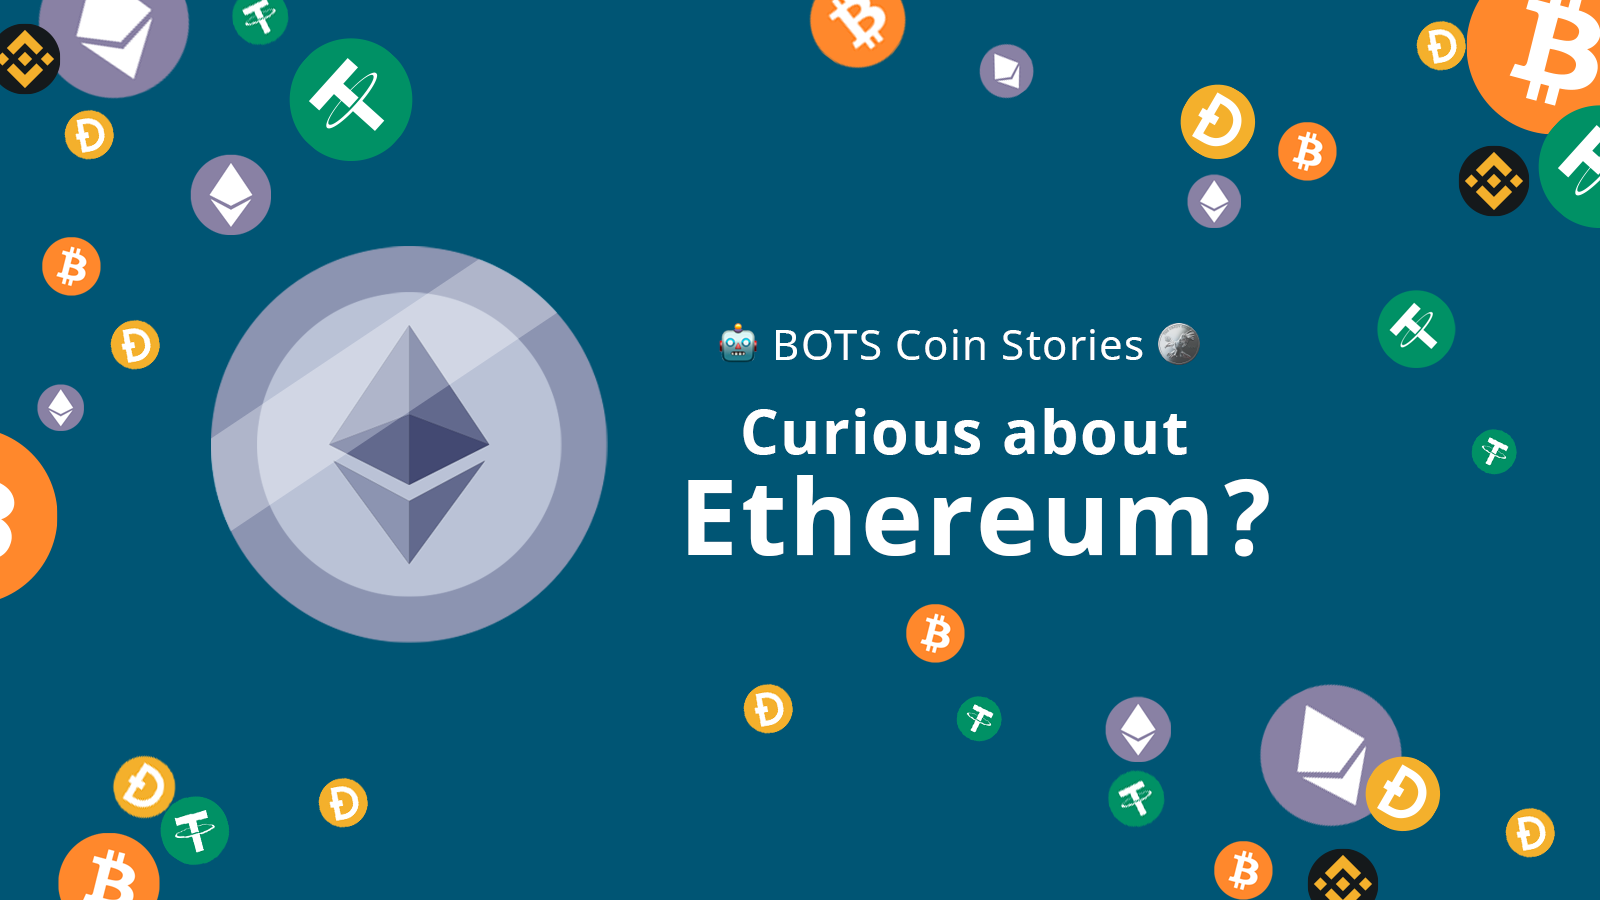 Curious about Ethereum?